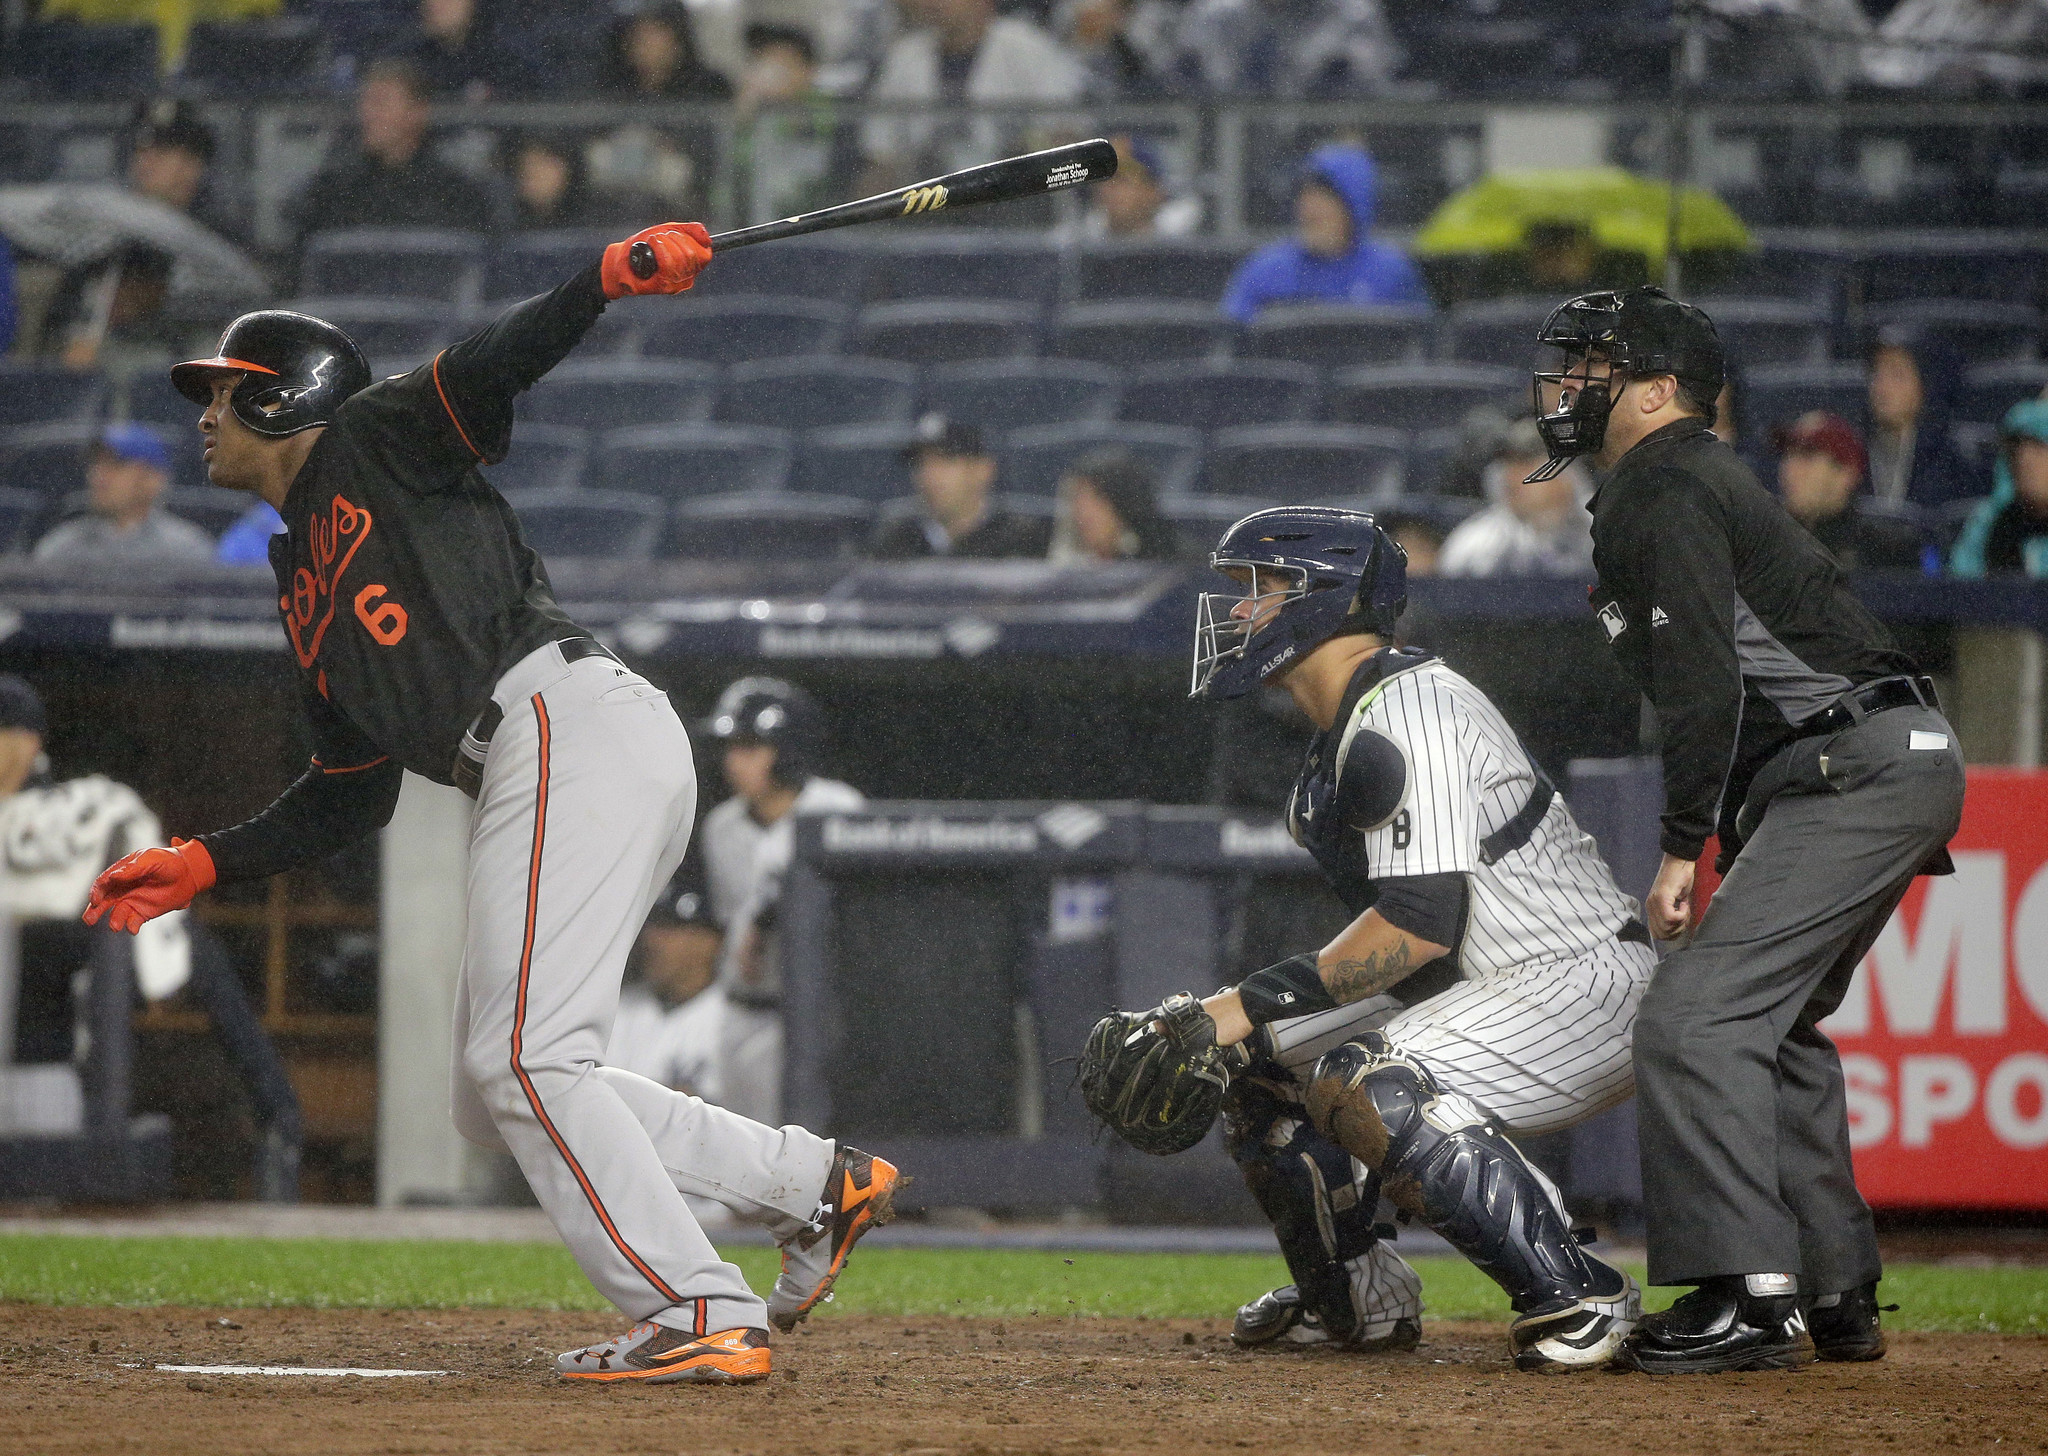 Bal-orioles-on-deck-what-to-watch-saturday-at-yankees-20161001